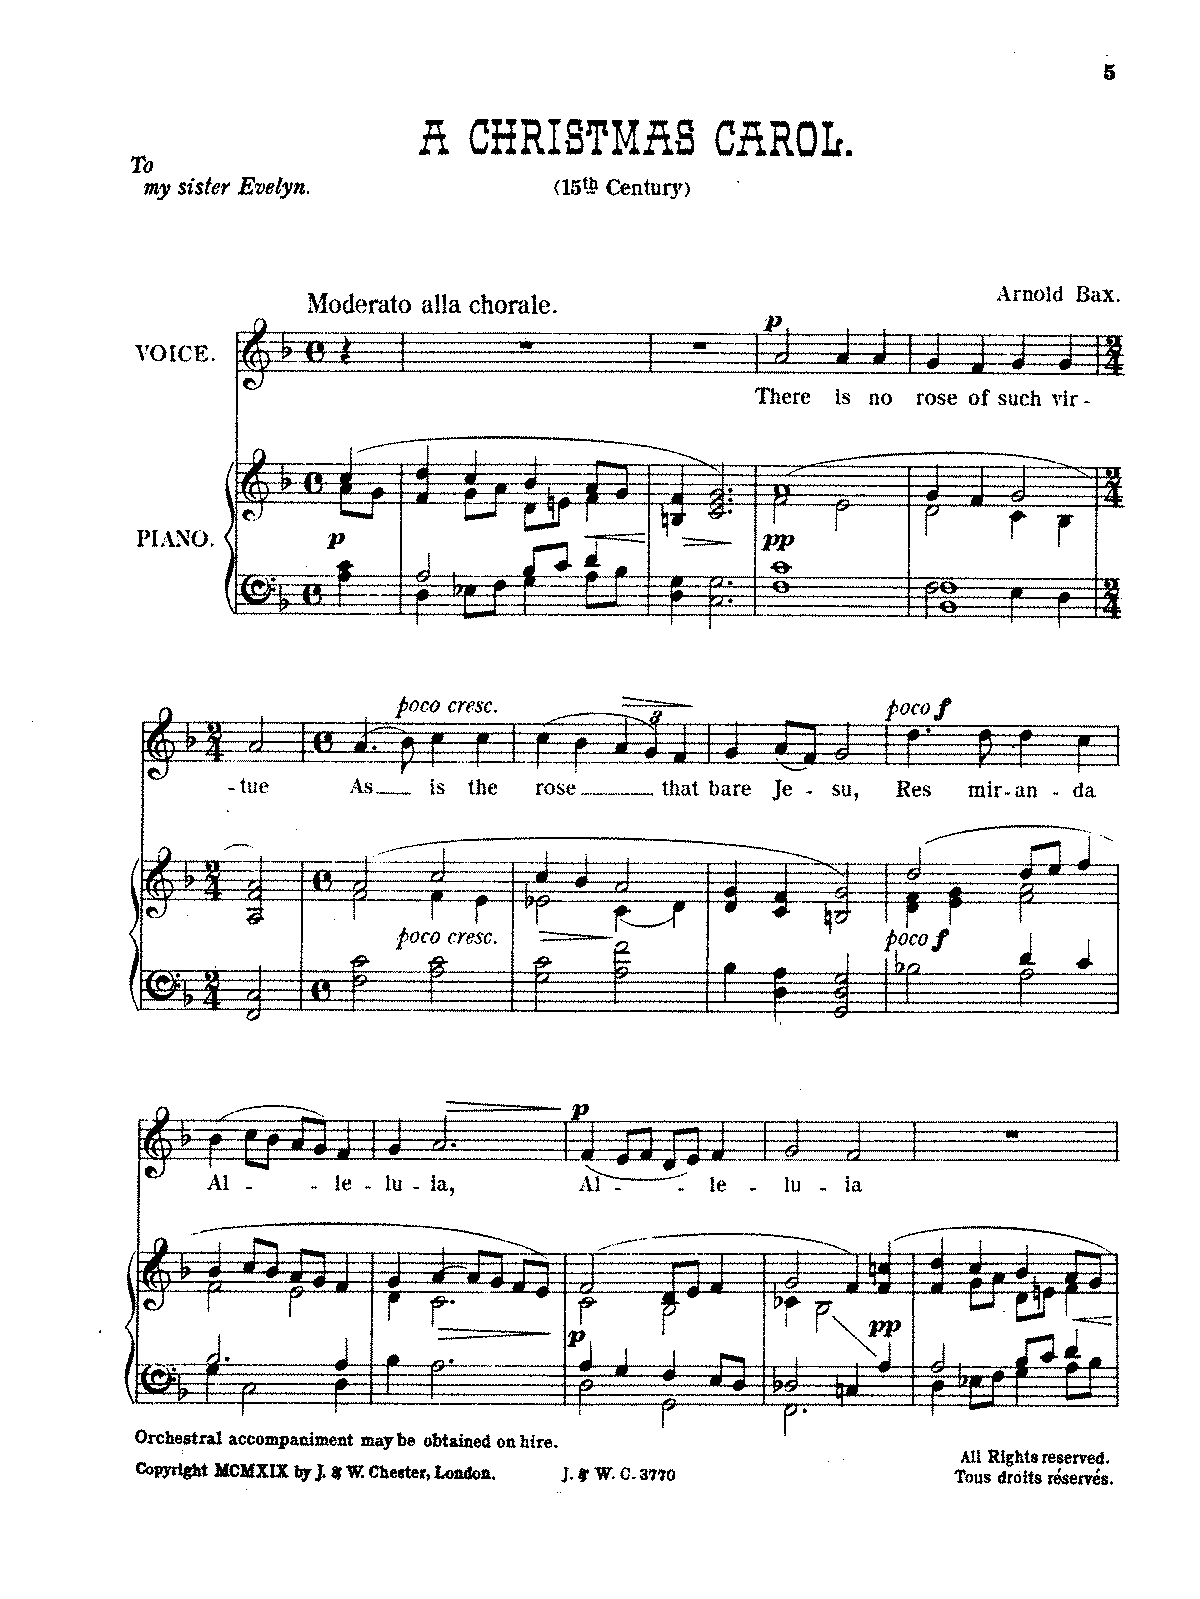 PMLP46205-Bax - A Christmas Carol (voice and piano).pdf